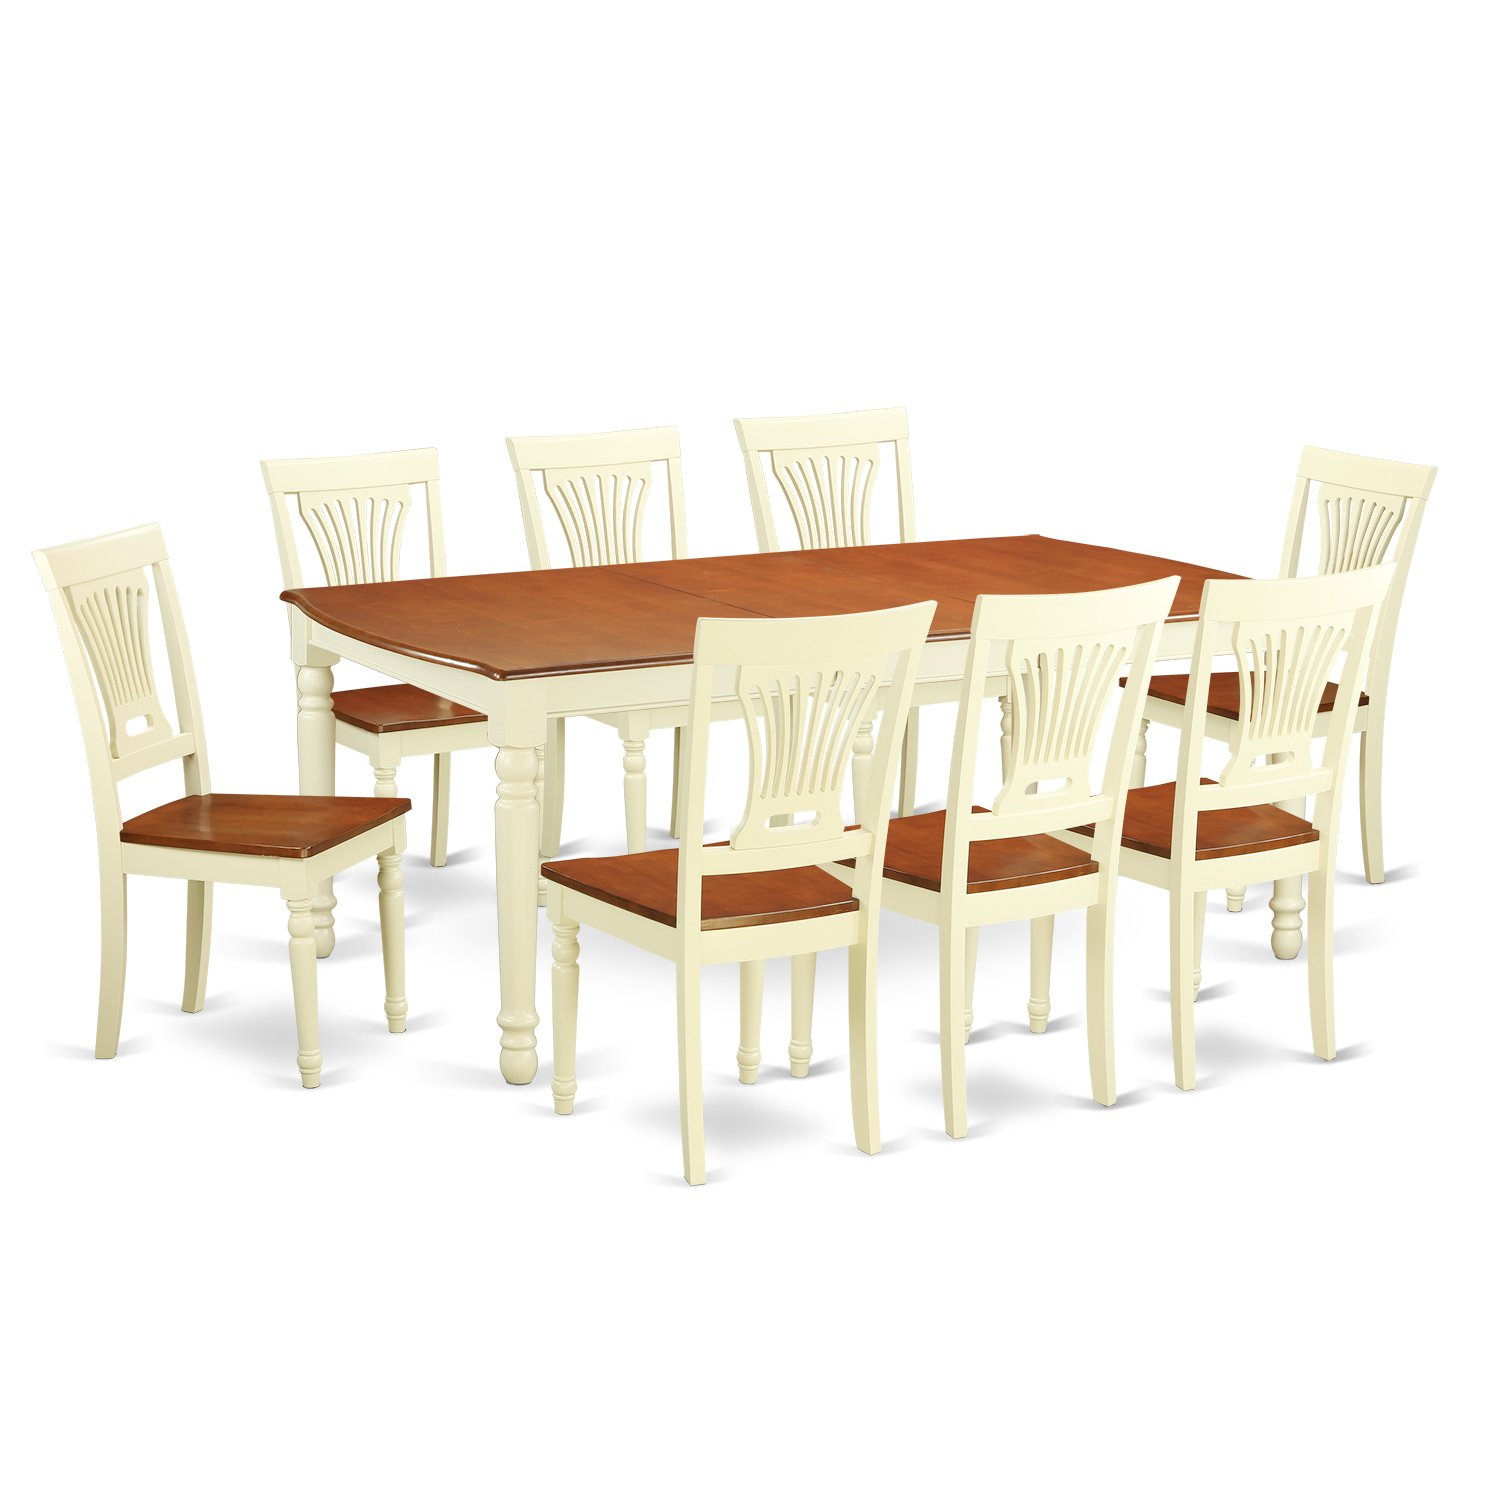 DOPL9-WHI-W 9 Pc Dining room set for 8- Dining Table and 8 Kitchen Chairs